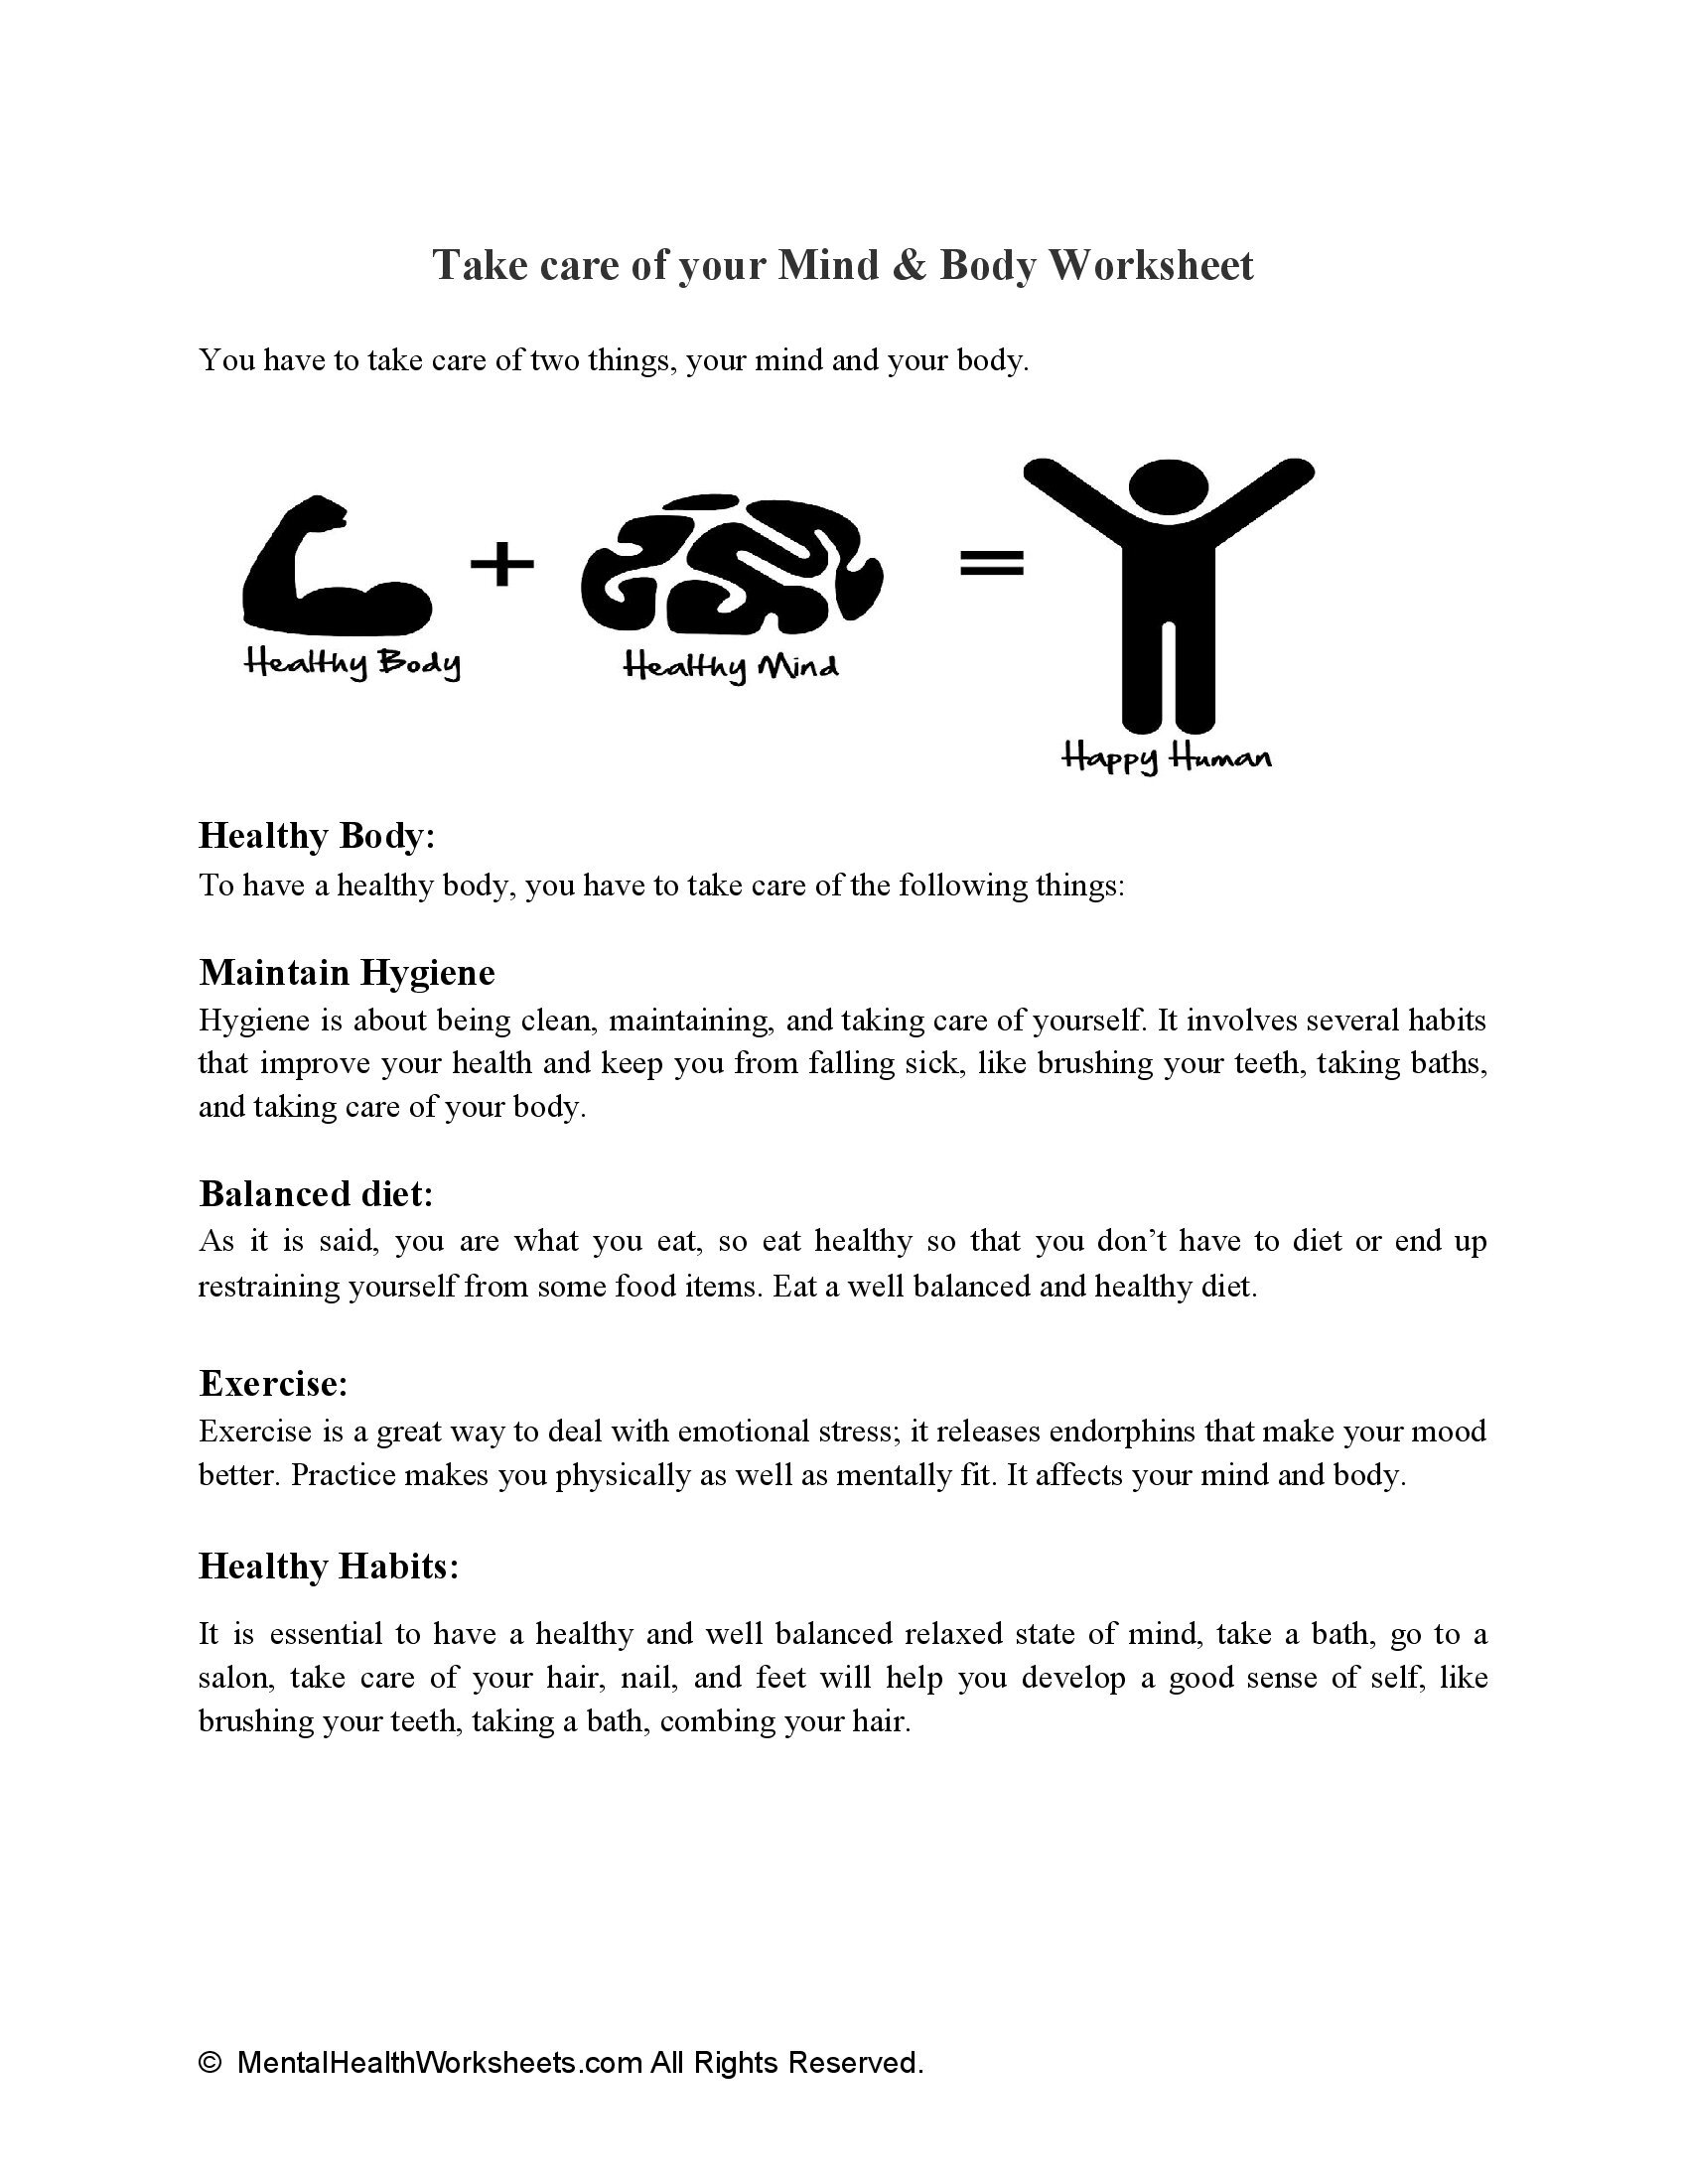 Take care of your Mind & Body Worksheet